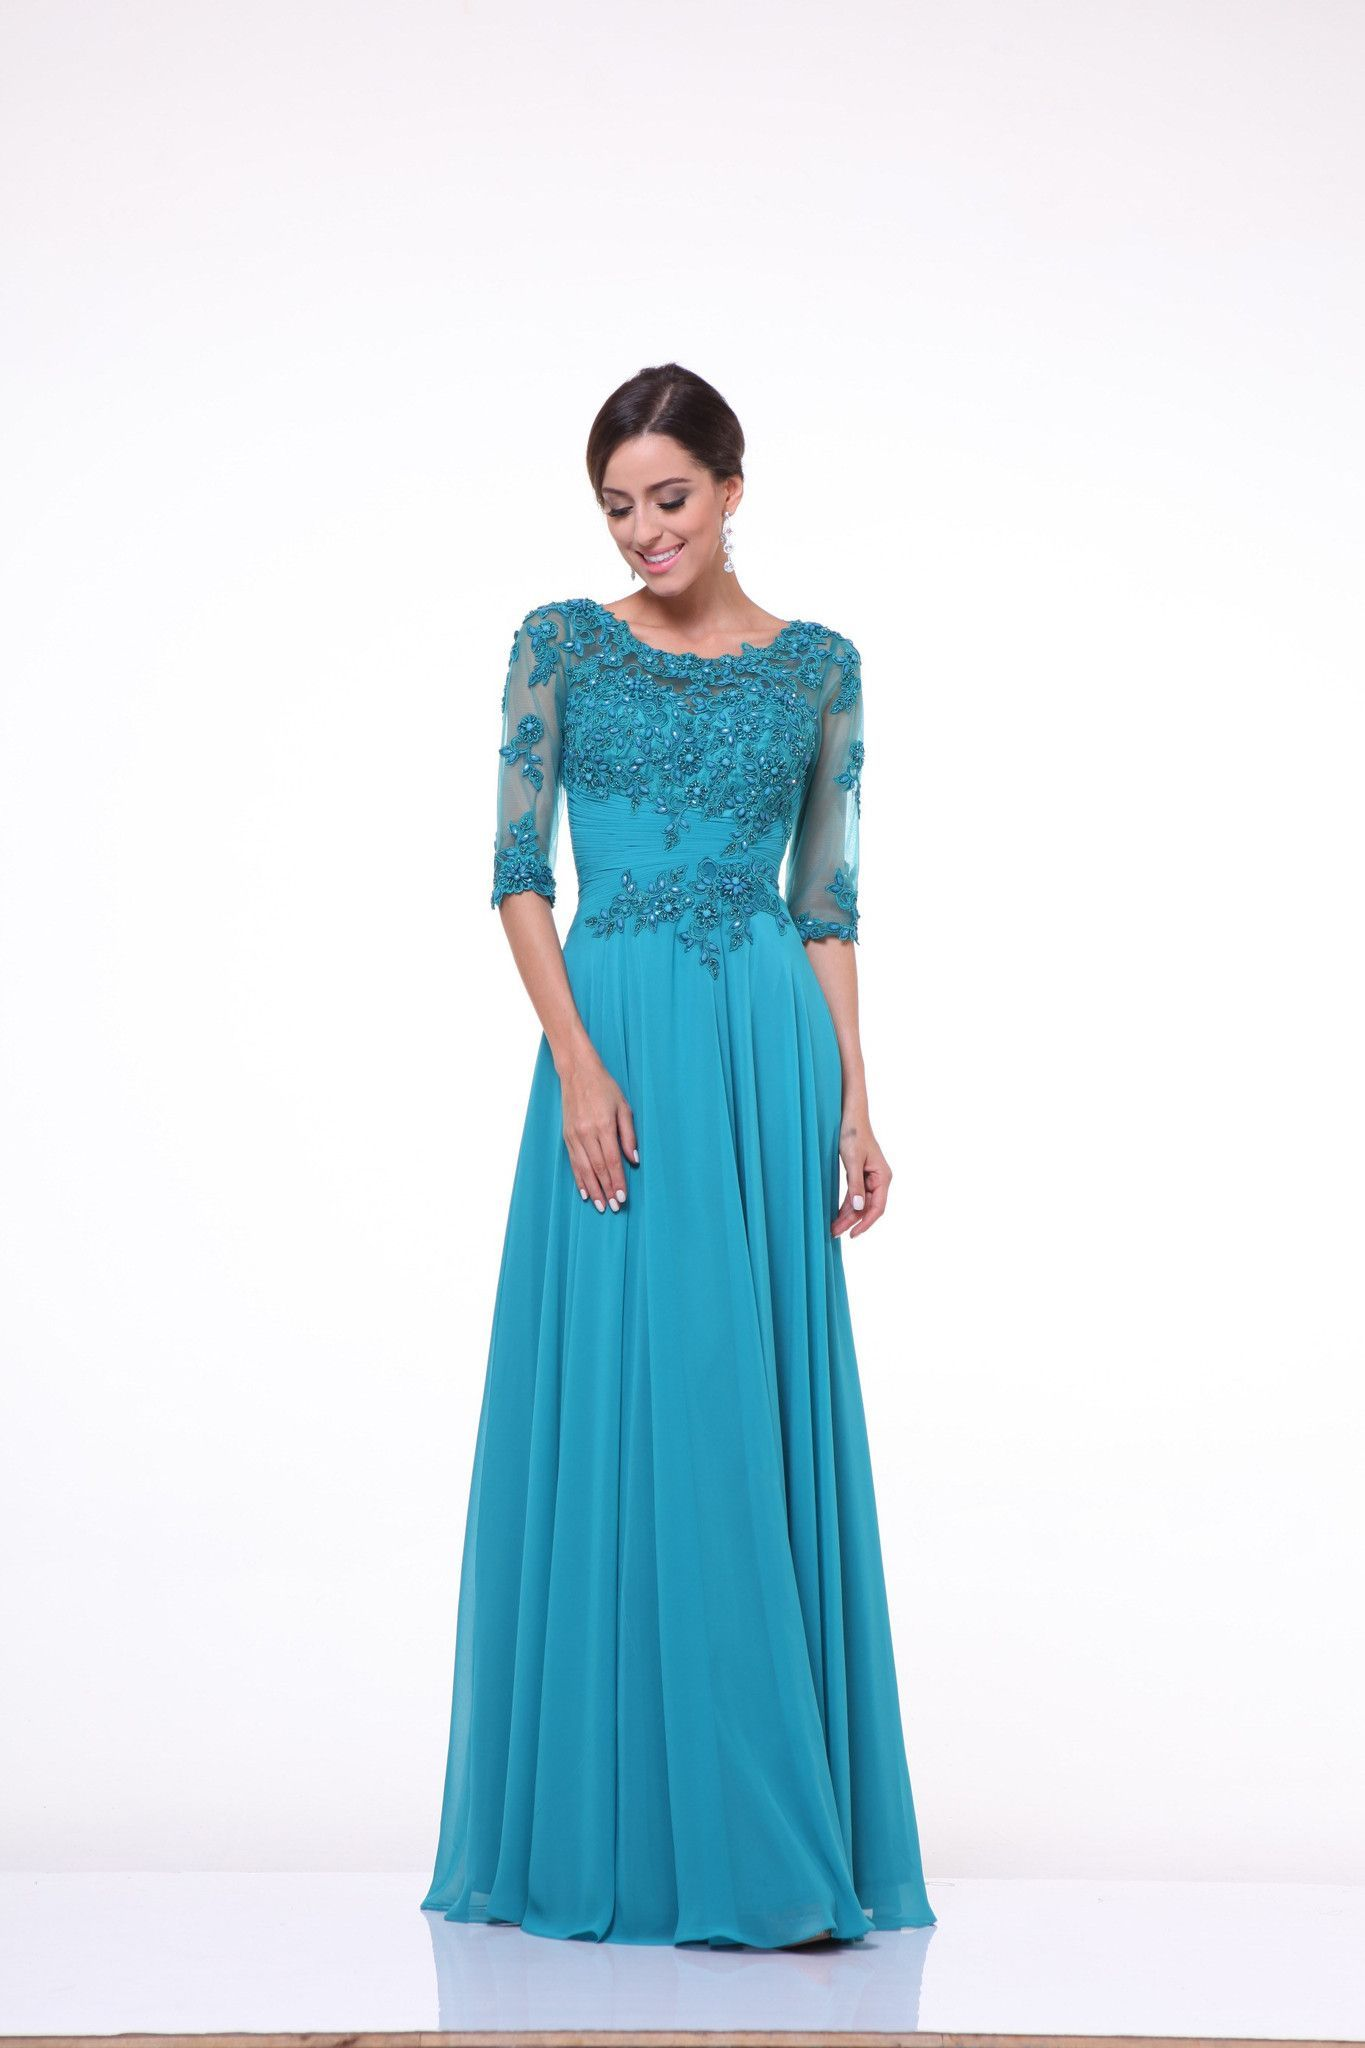 Formal Long Sleeve Plus Size Mother of the Bride Evening Dress ...